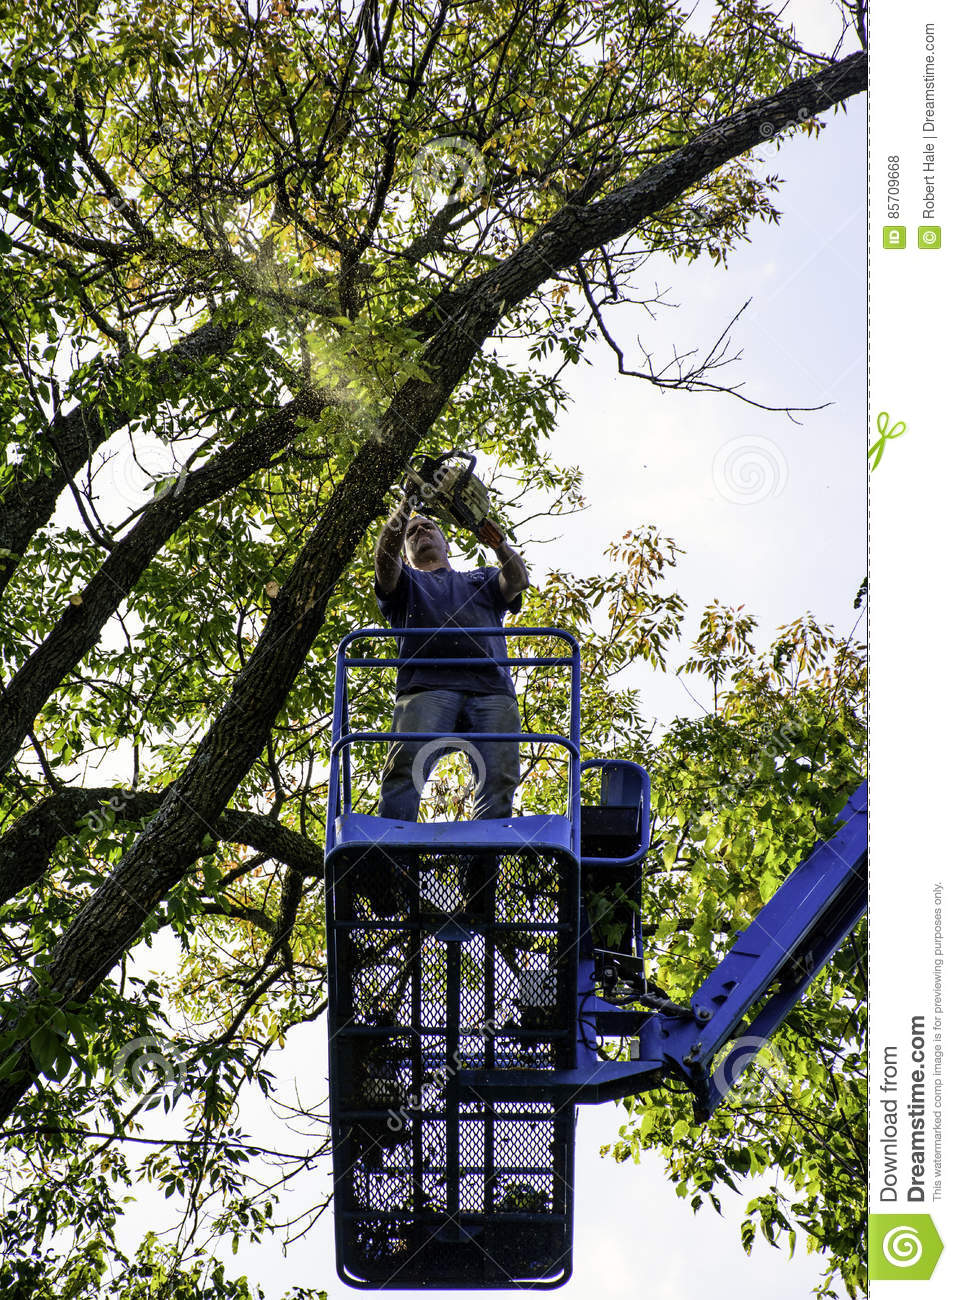 Tree Cutter Tree Cutter Stock Photo Image Of Lift Aerial Chain 85709668